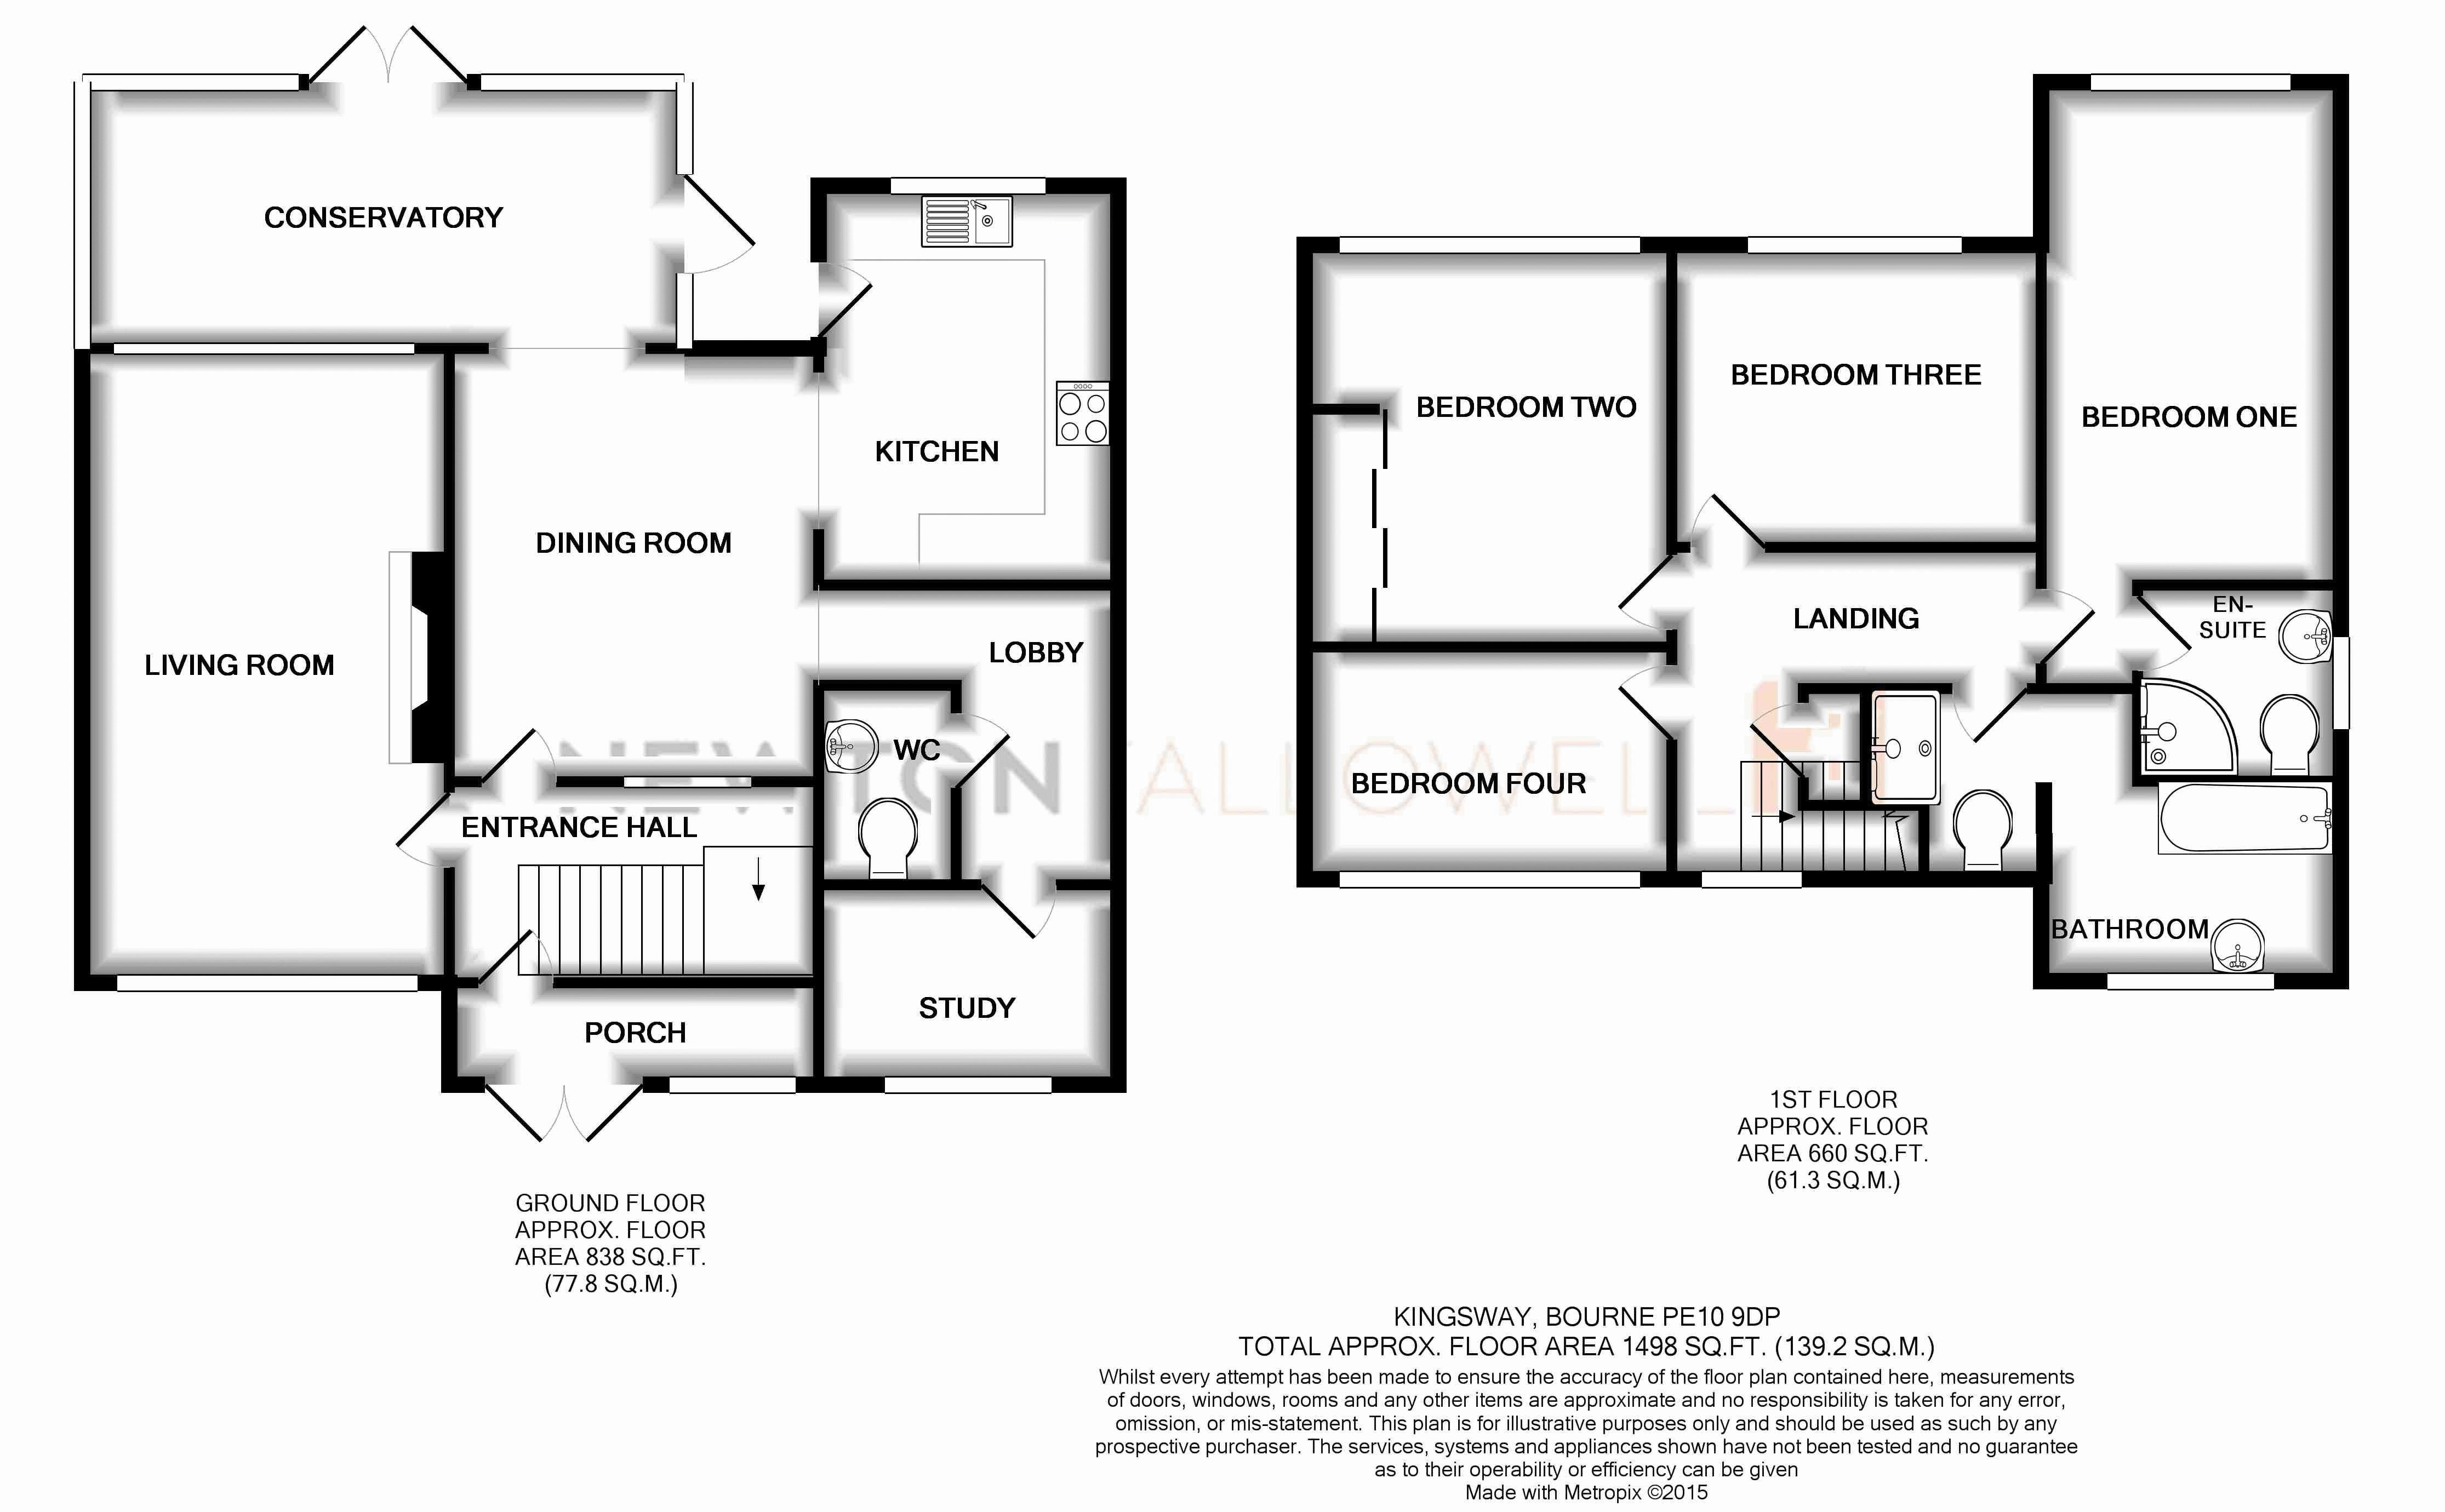 4 bed semi detached house for sale in kingsway bourne pe10 36941563